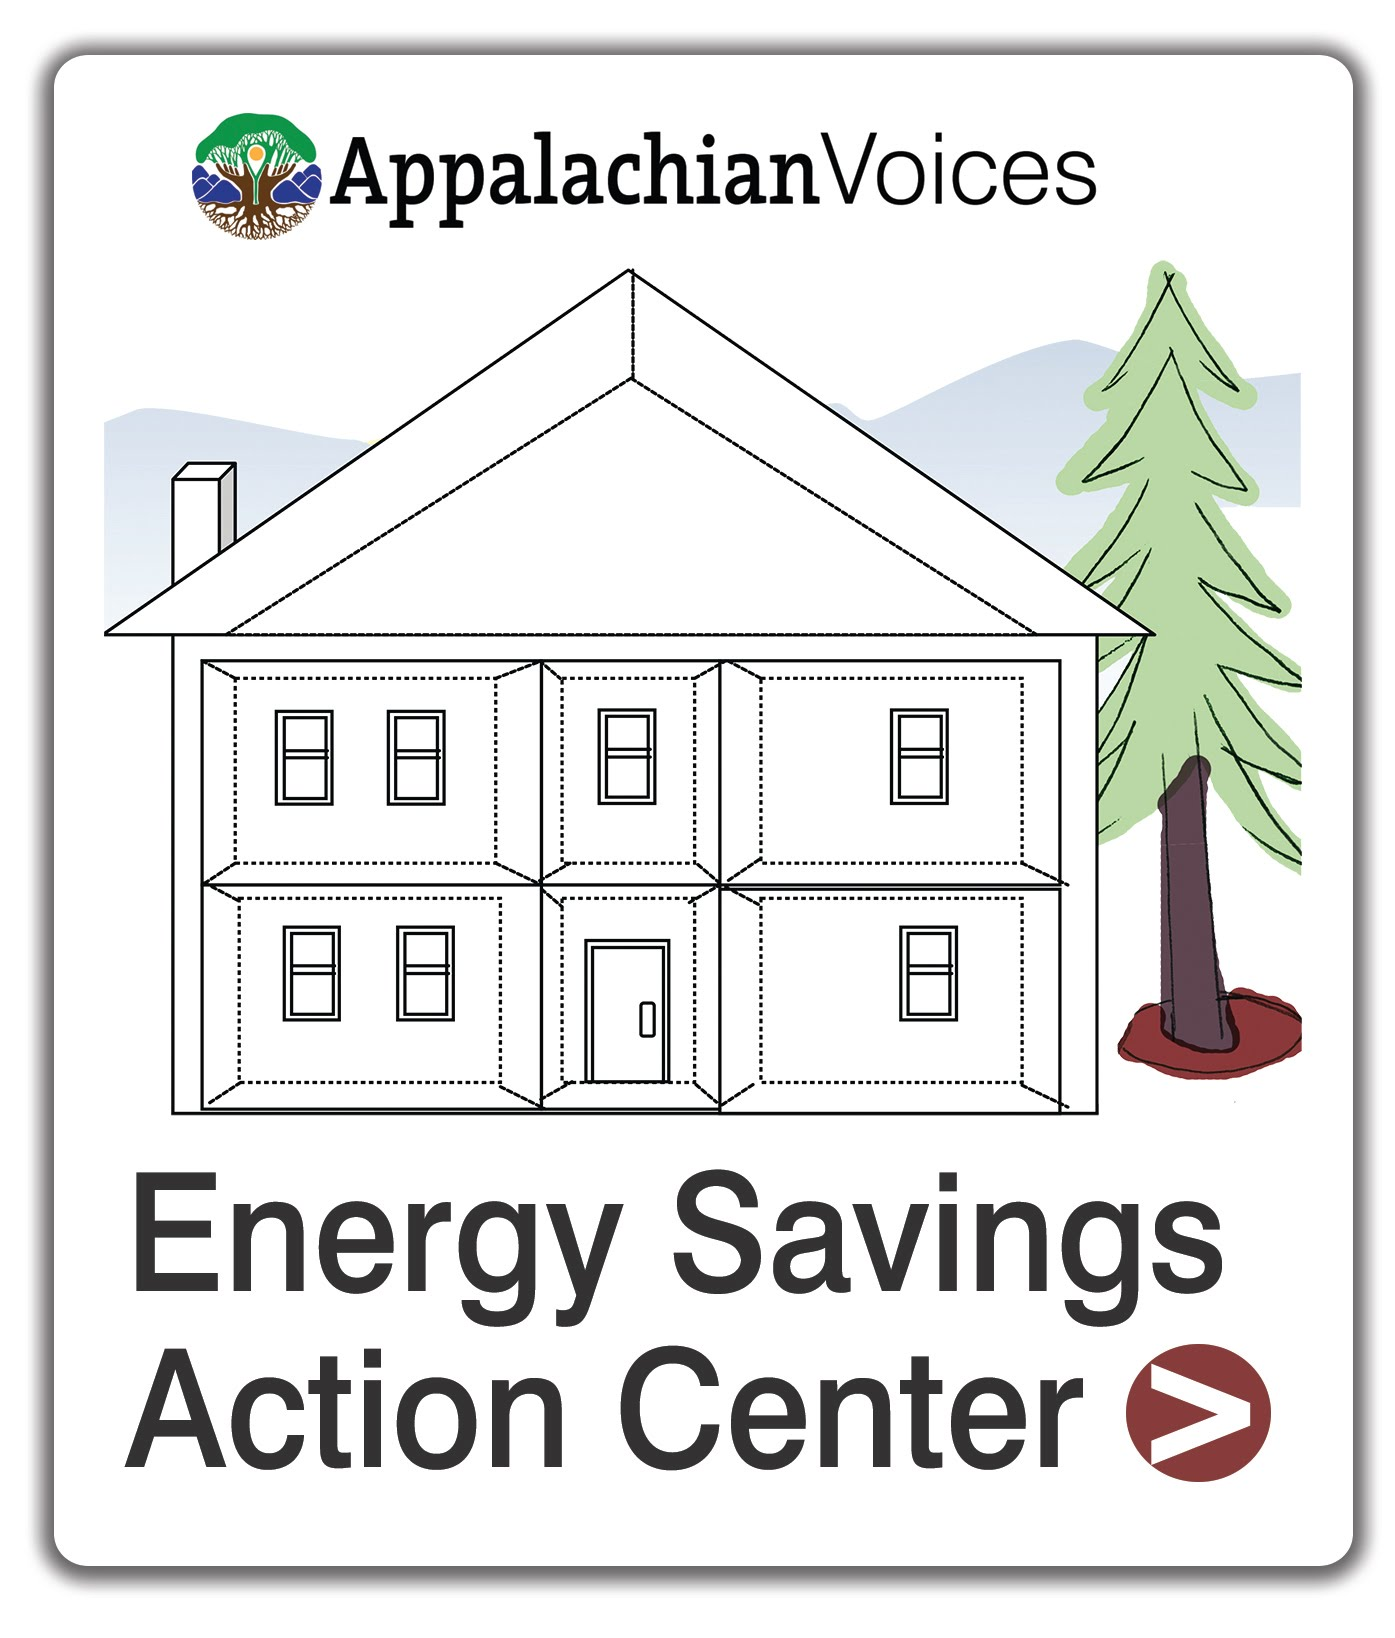 Appalachian Voices Energy Savings Action Center